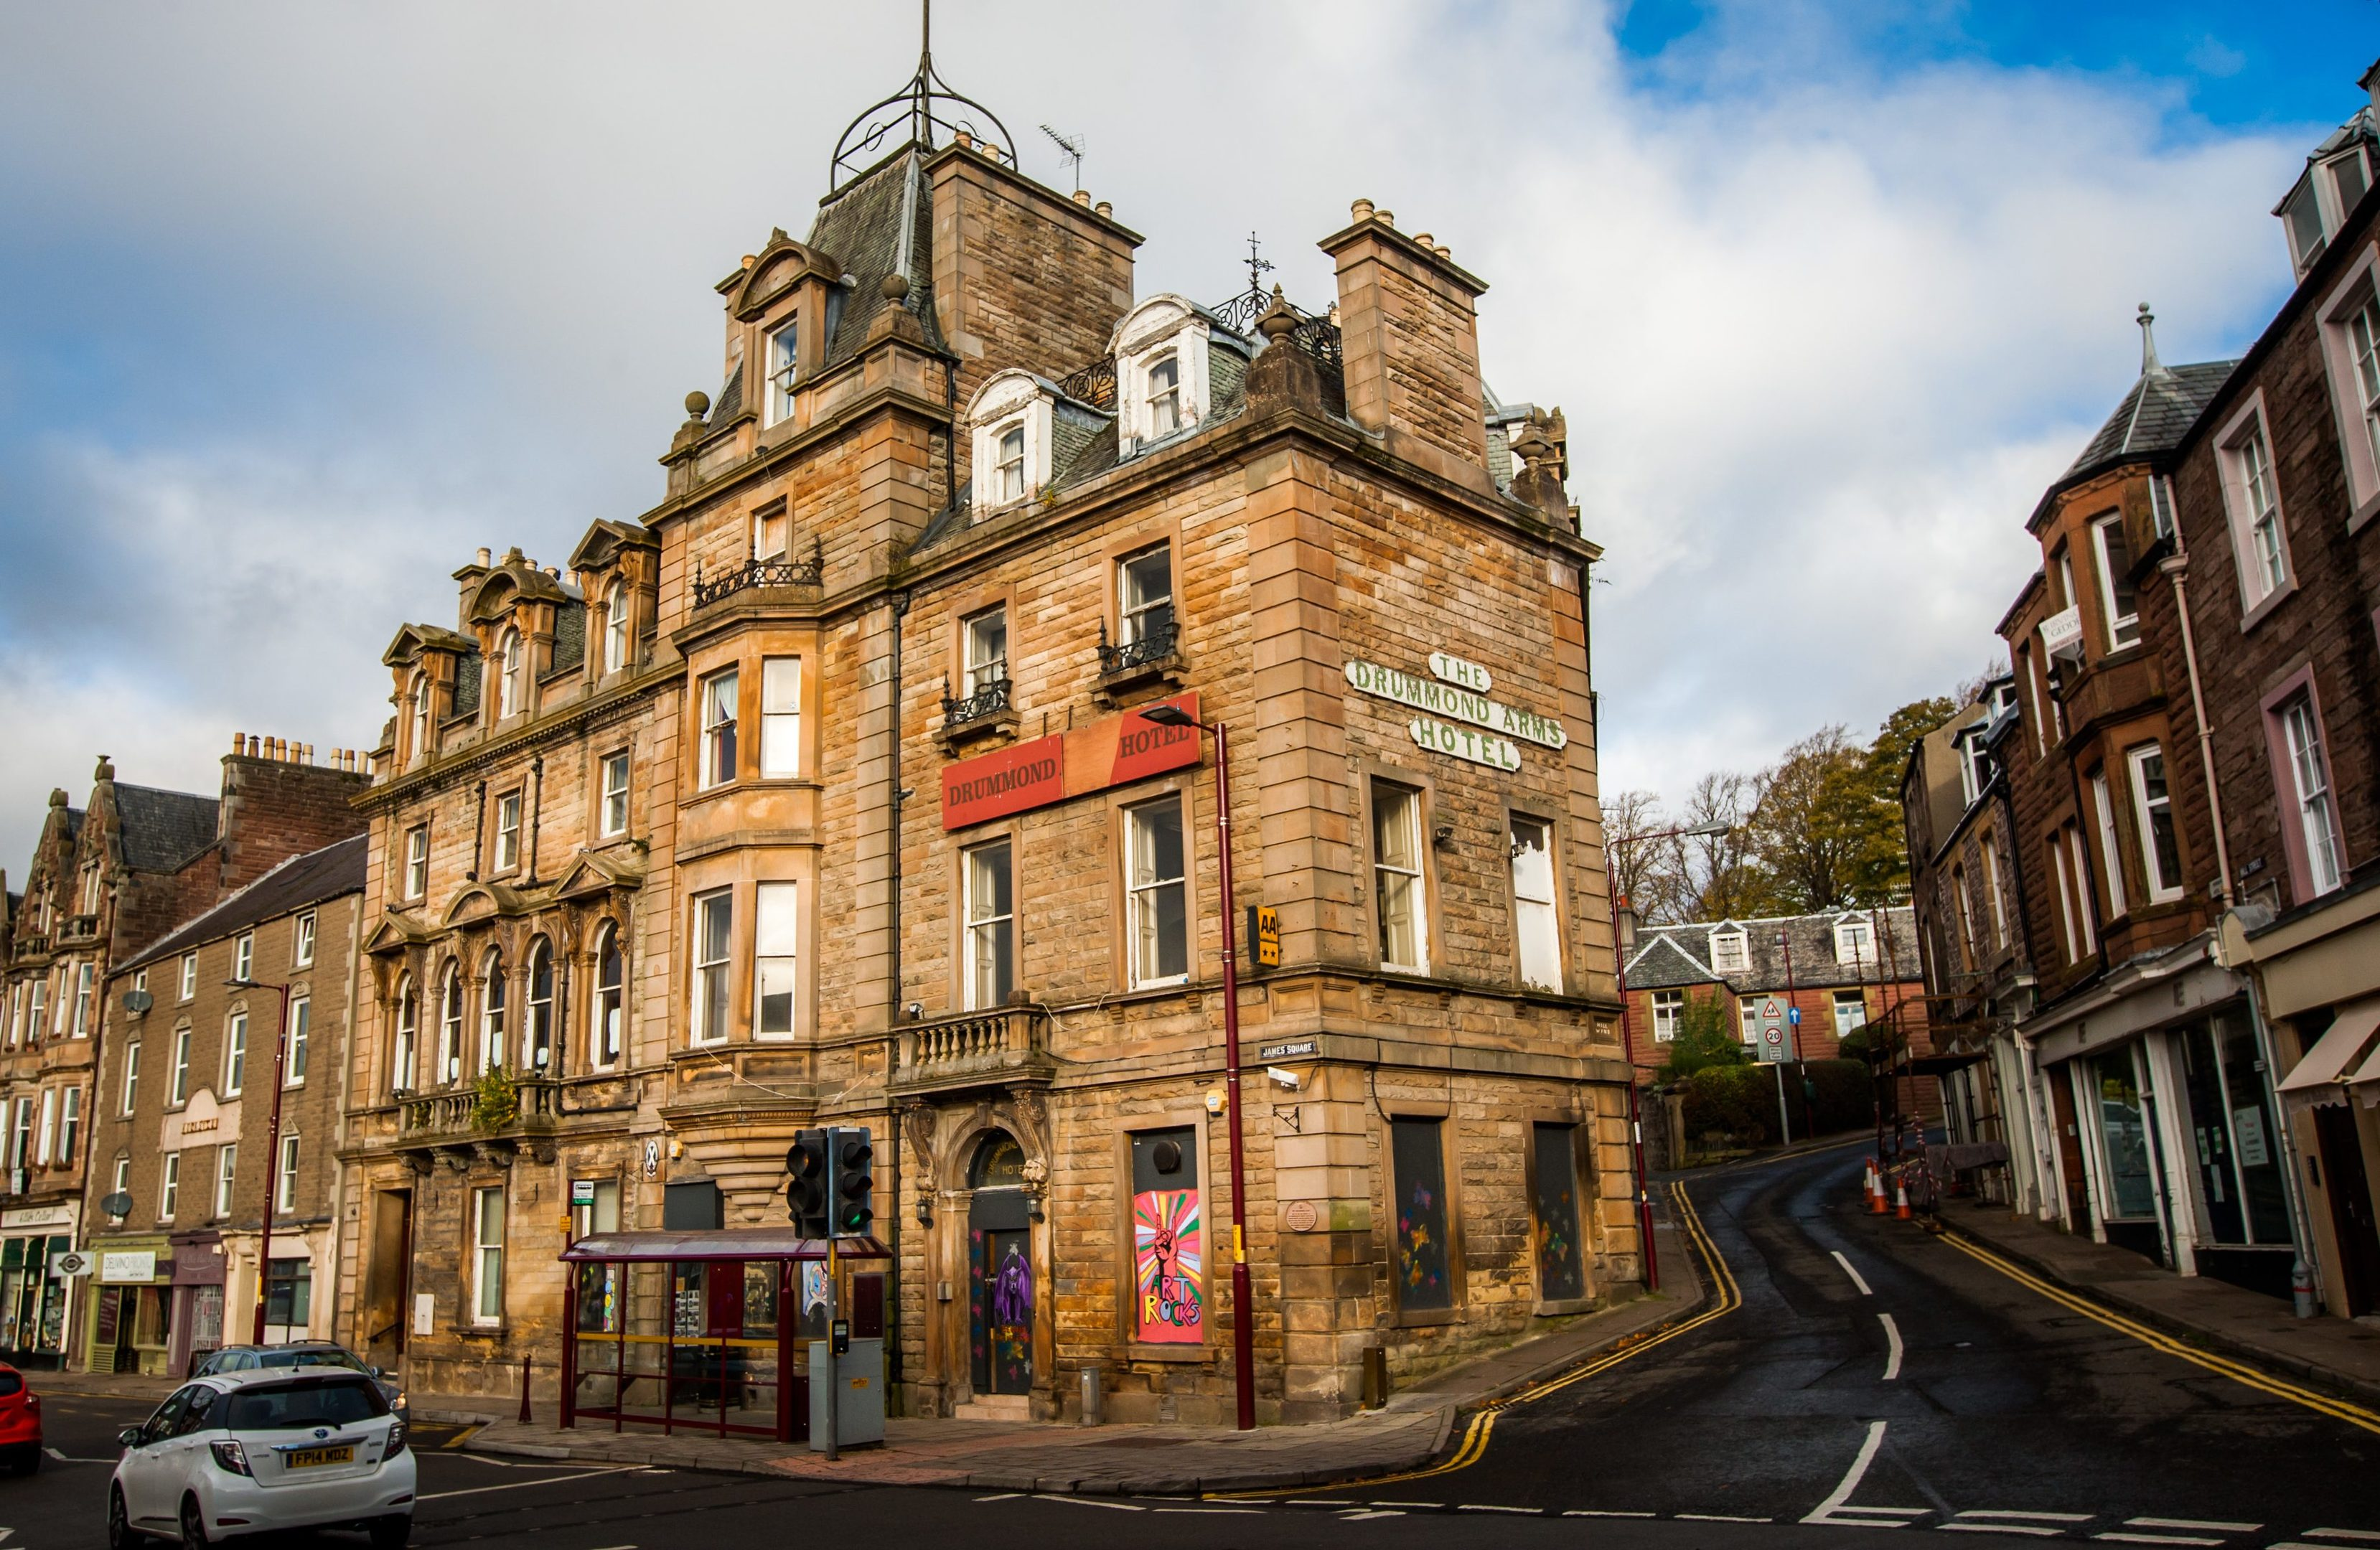 The Drummond Arms Hotel. High Street, Crieff.